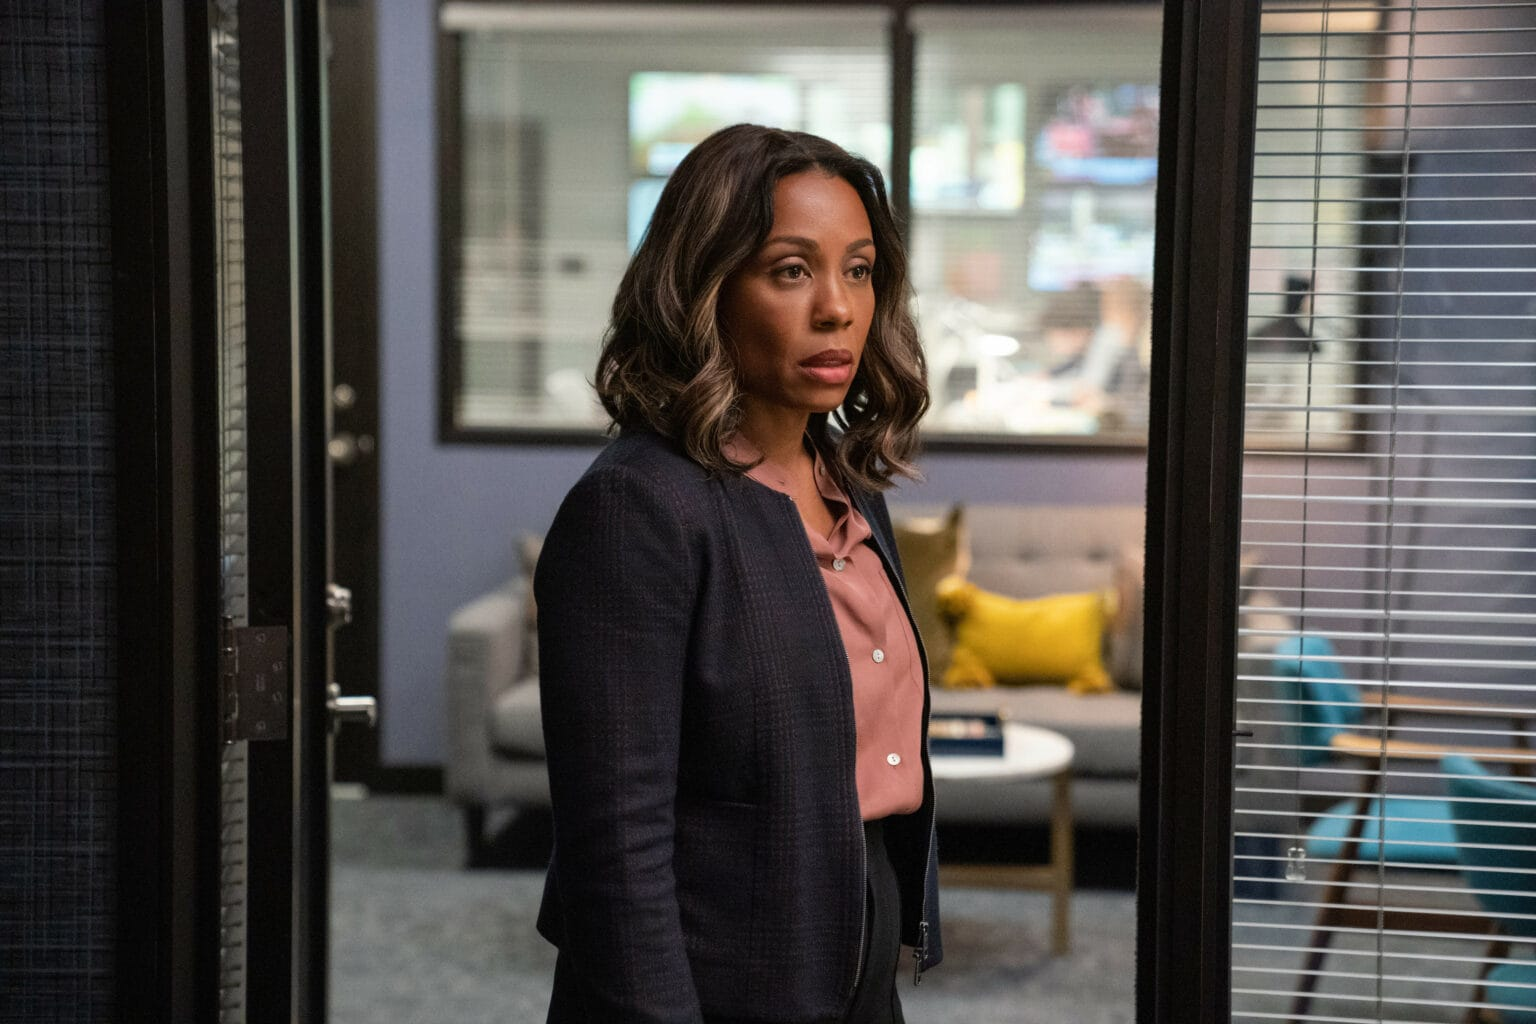 The Morning Show review: Karen Pittman finally gets a chance to shine.